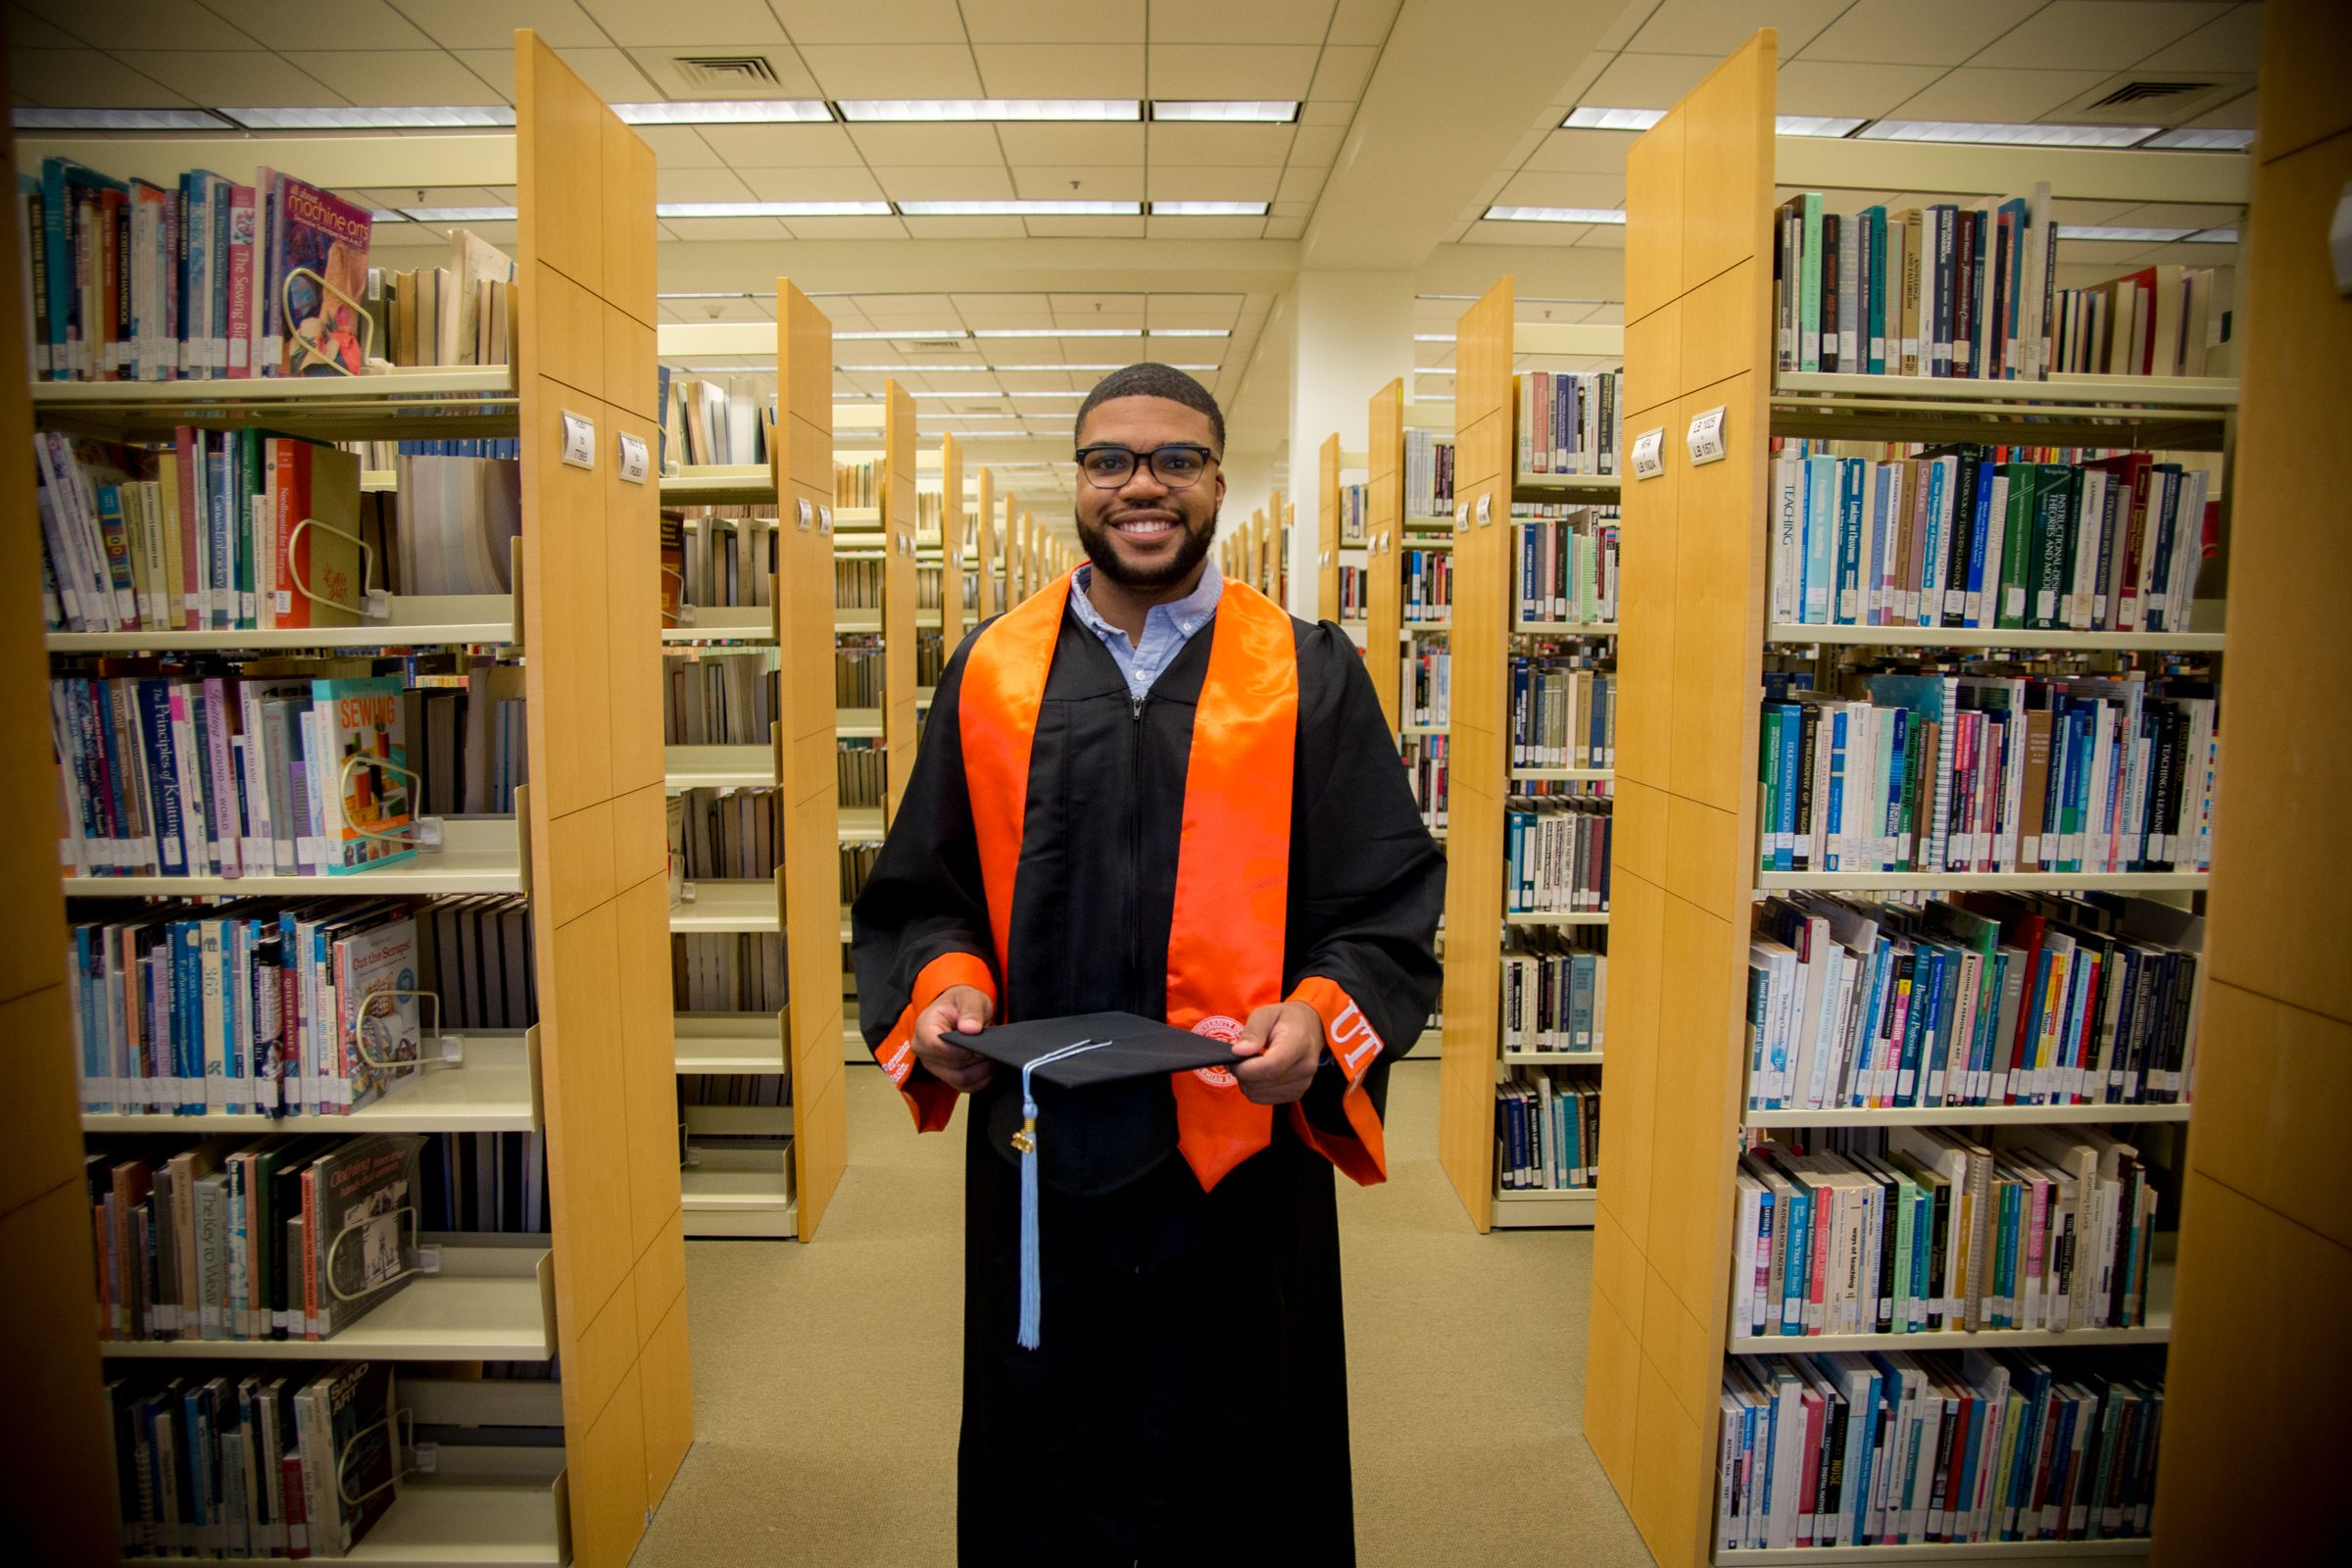 Student holding graduation cap in library